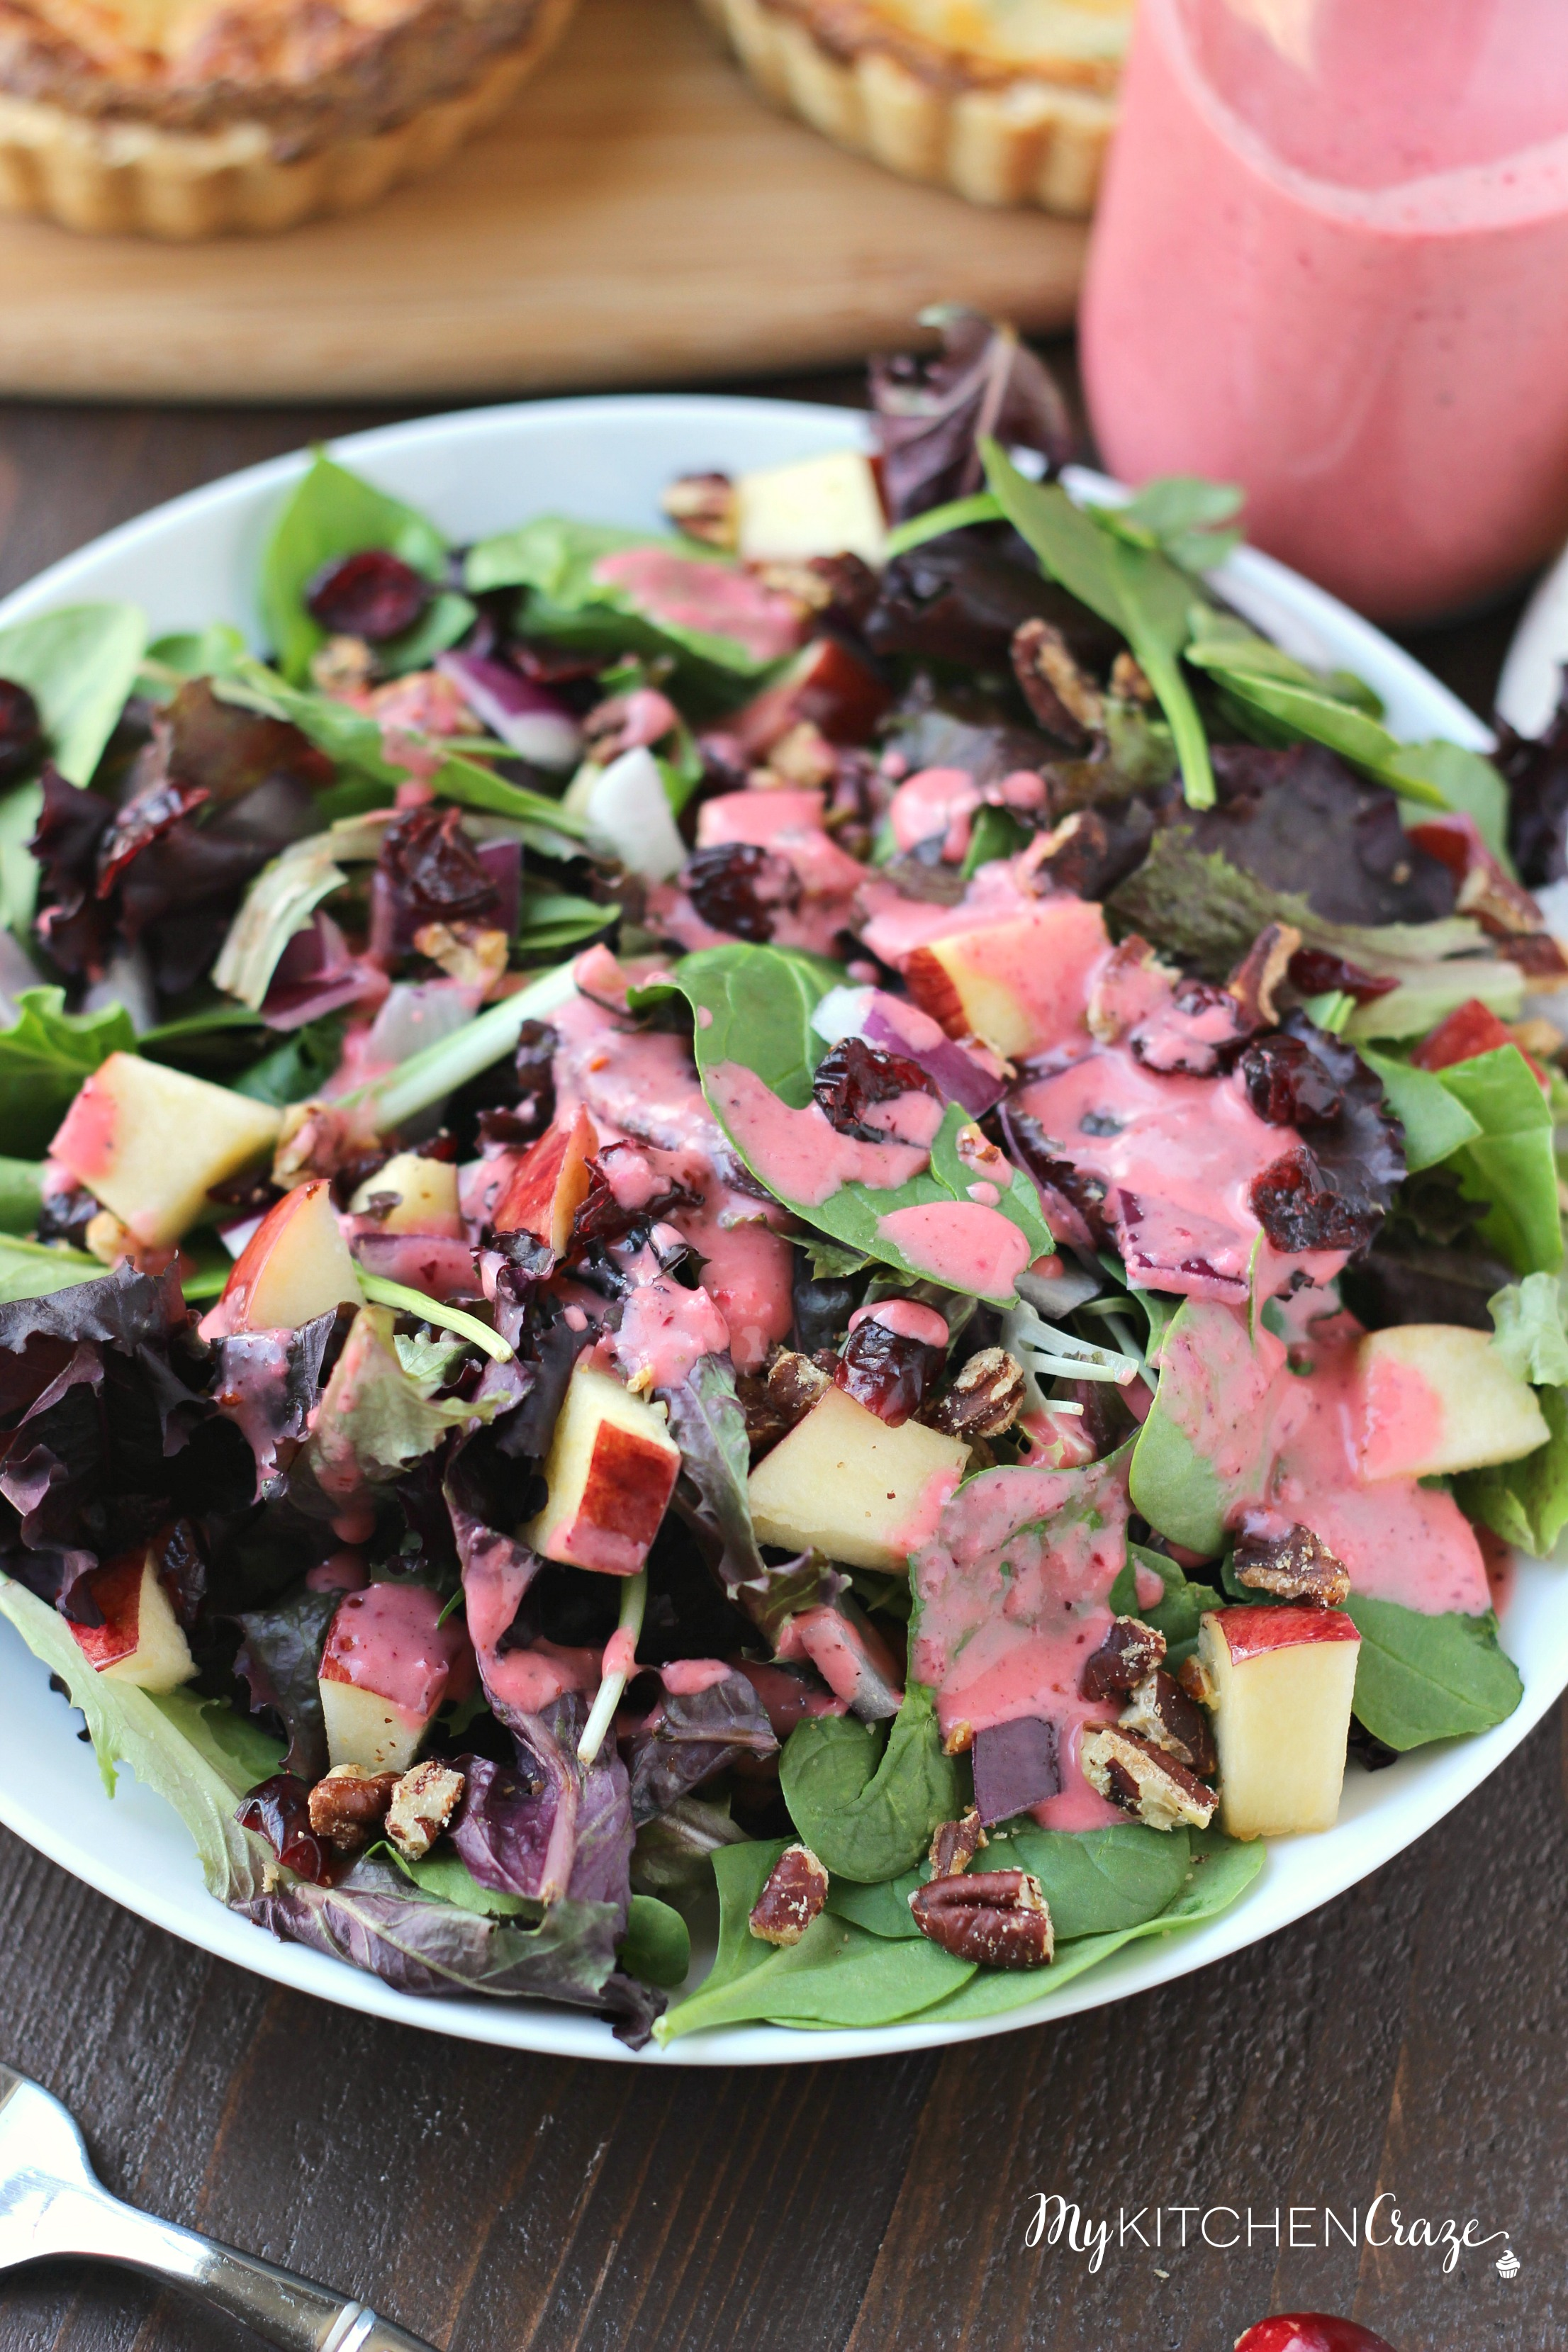 Cranberry Apple Spring Mix Salad ~ mykitchencraze.com ~ Enjoy this delicious holiday spring mix salad. Loaded with apples, pecans, dried cranberries and a decadent cranberry vinaigrette.